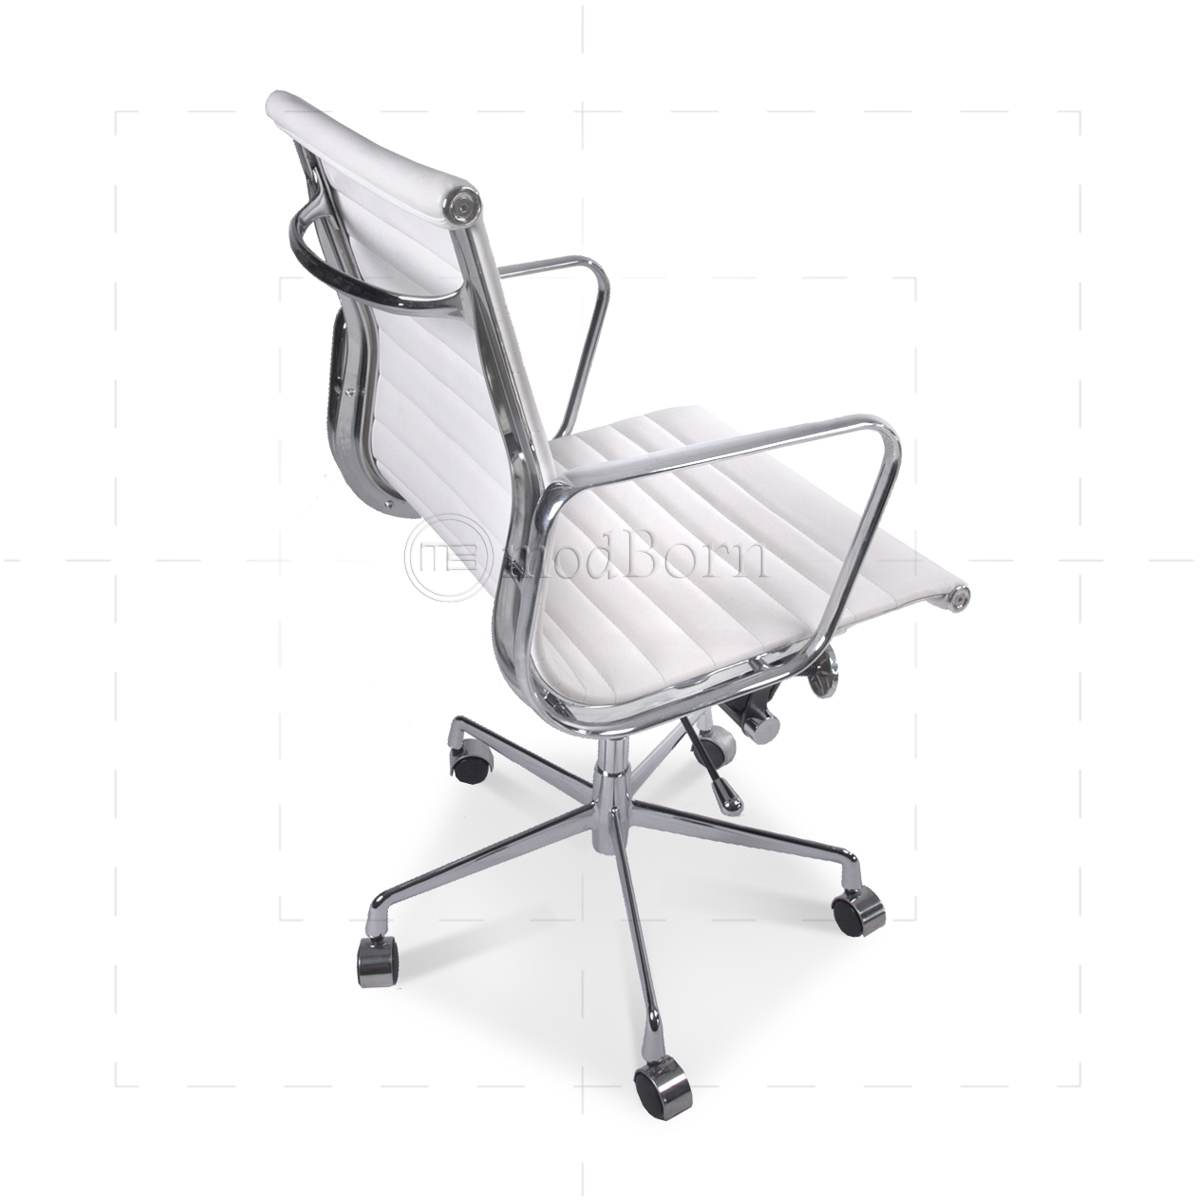 stylish office chairs uk pottery barn everywhere chair ea117 eames style low back ribbed white leather